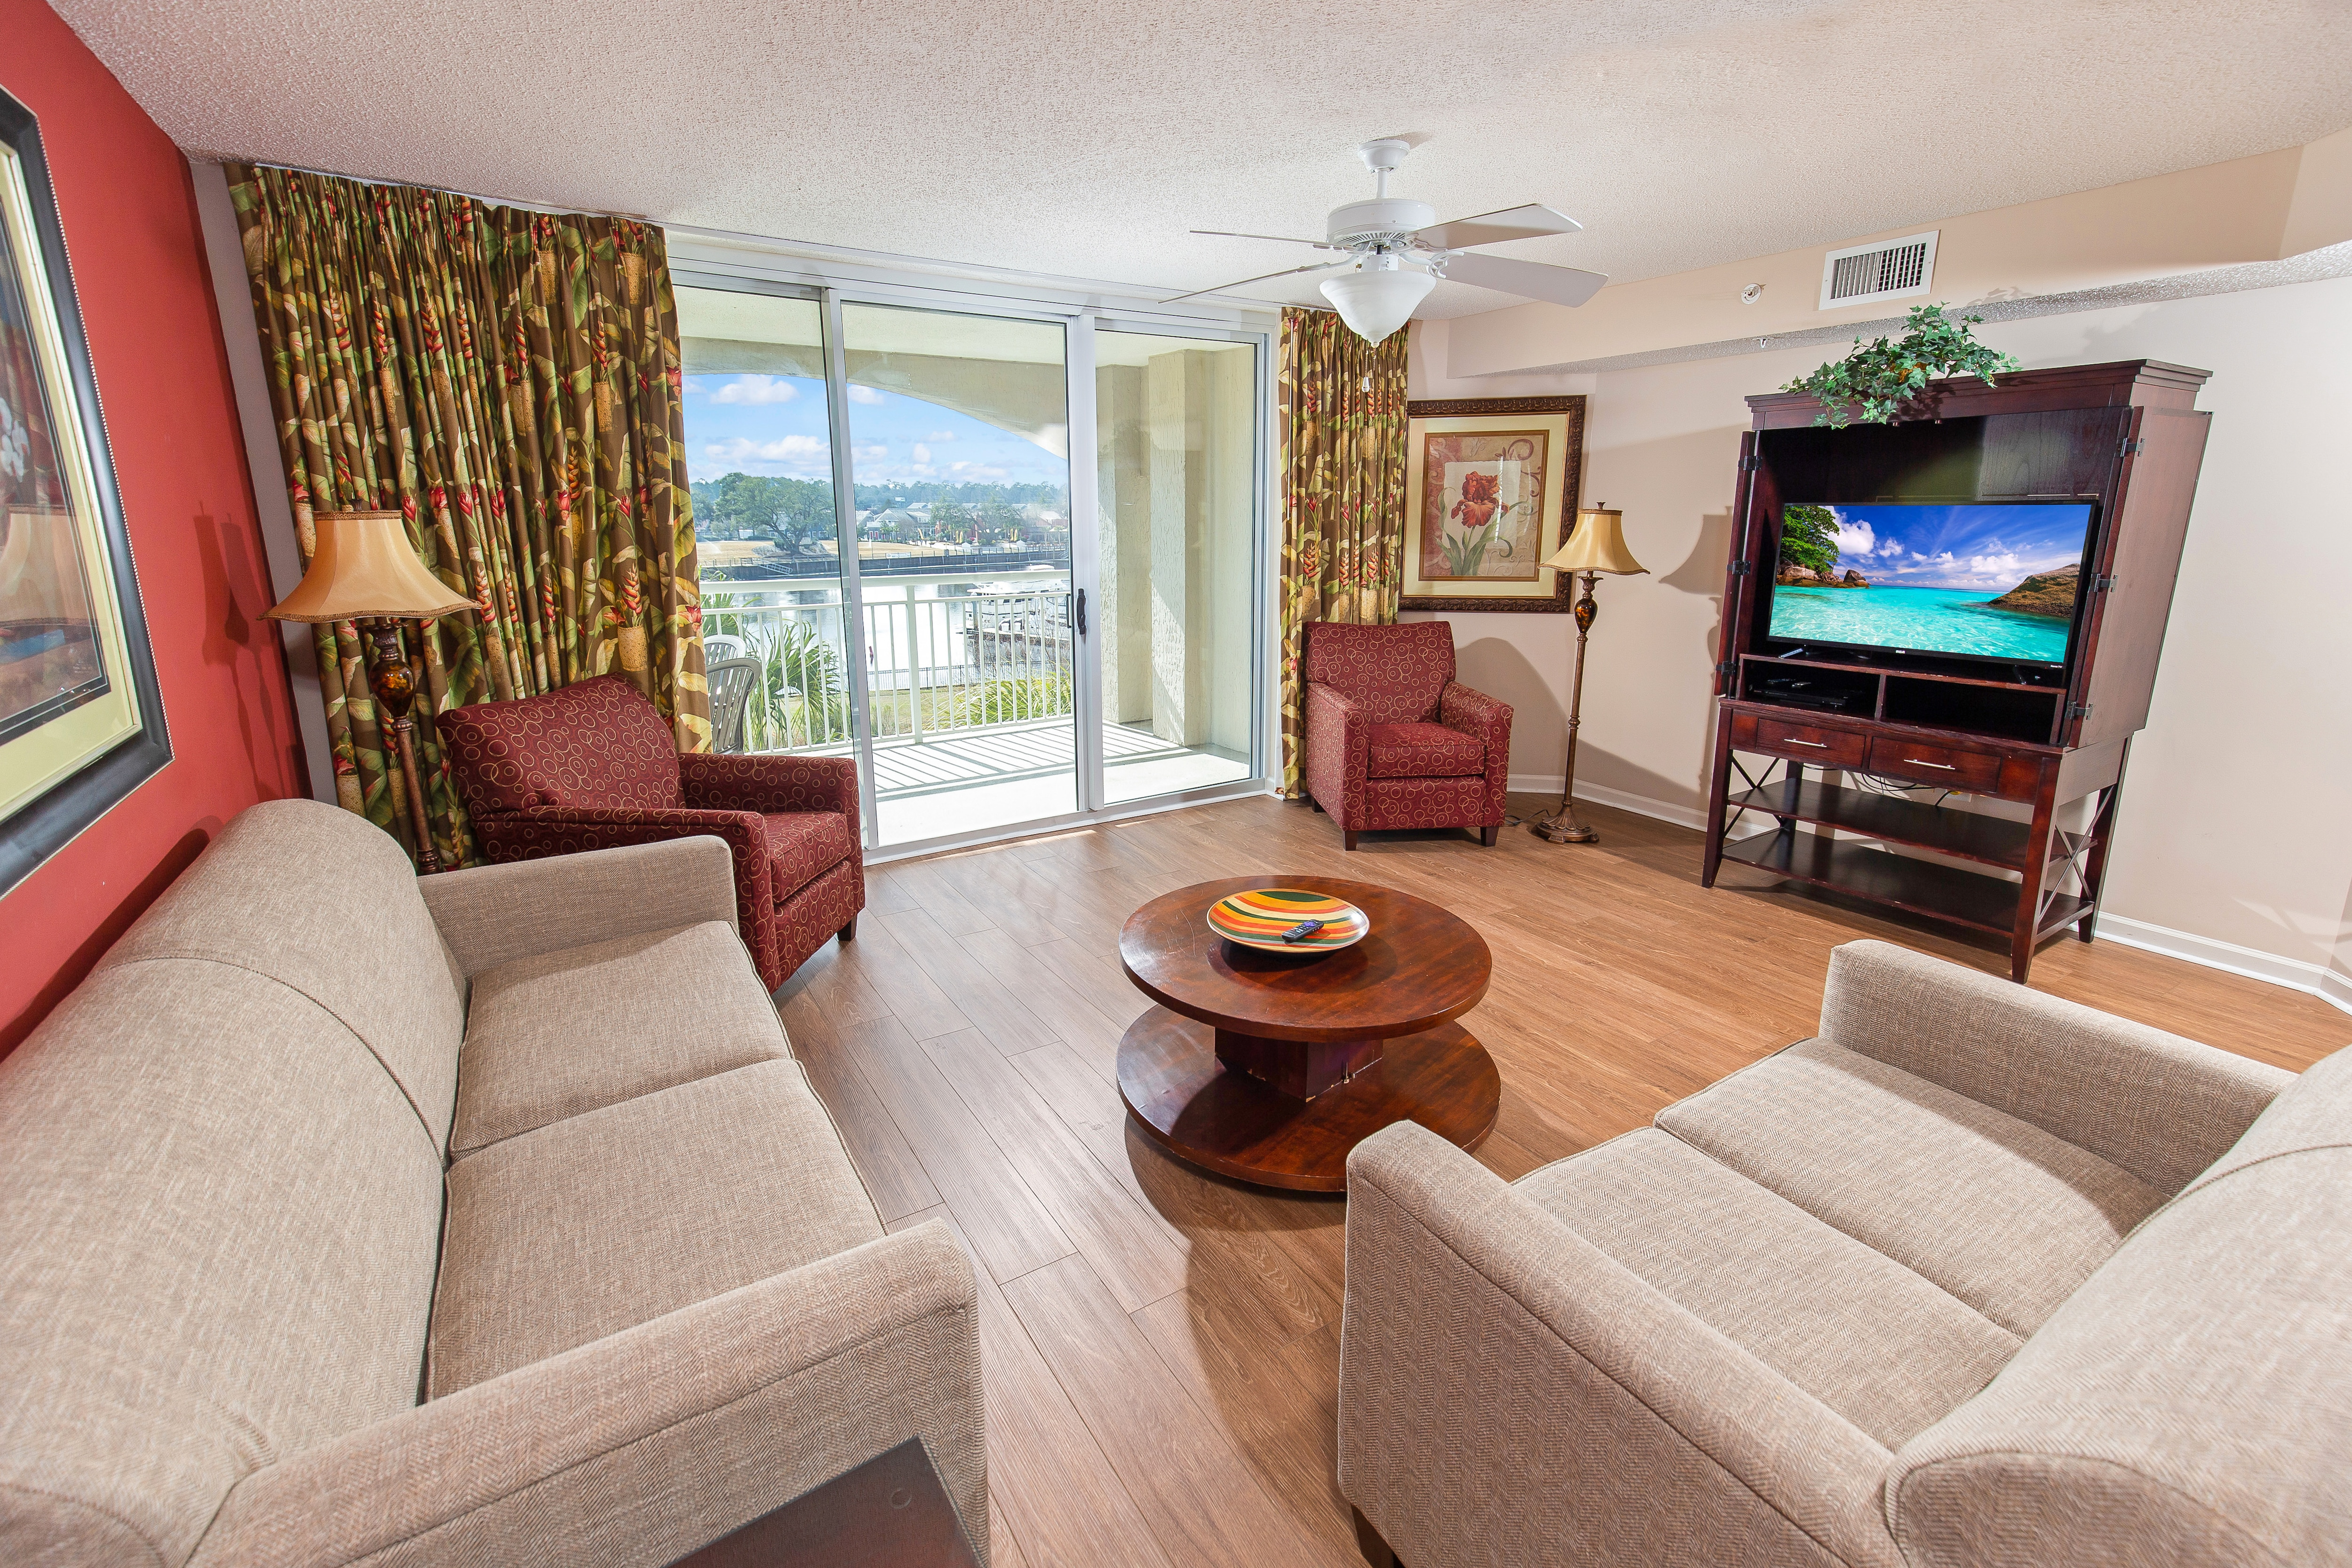 Property Image 2 - Luxurious 2-bedroom Condo w Great View of the Intracoastal Waterway